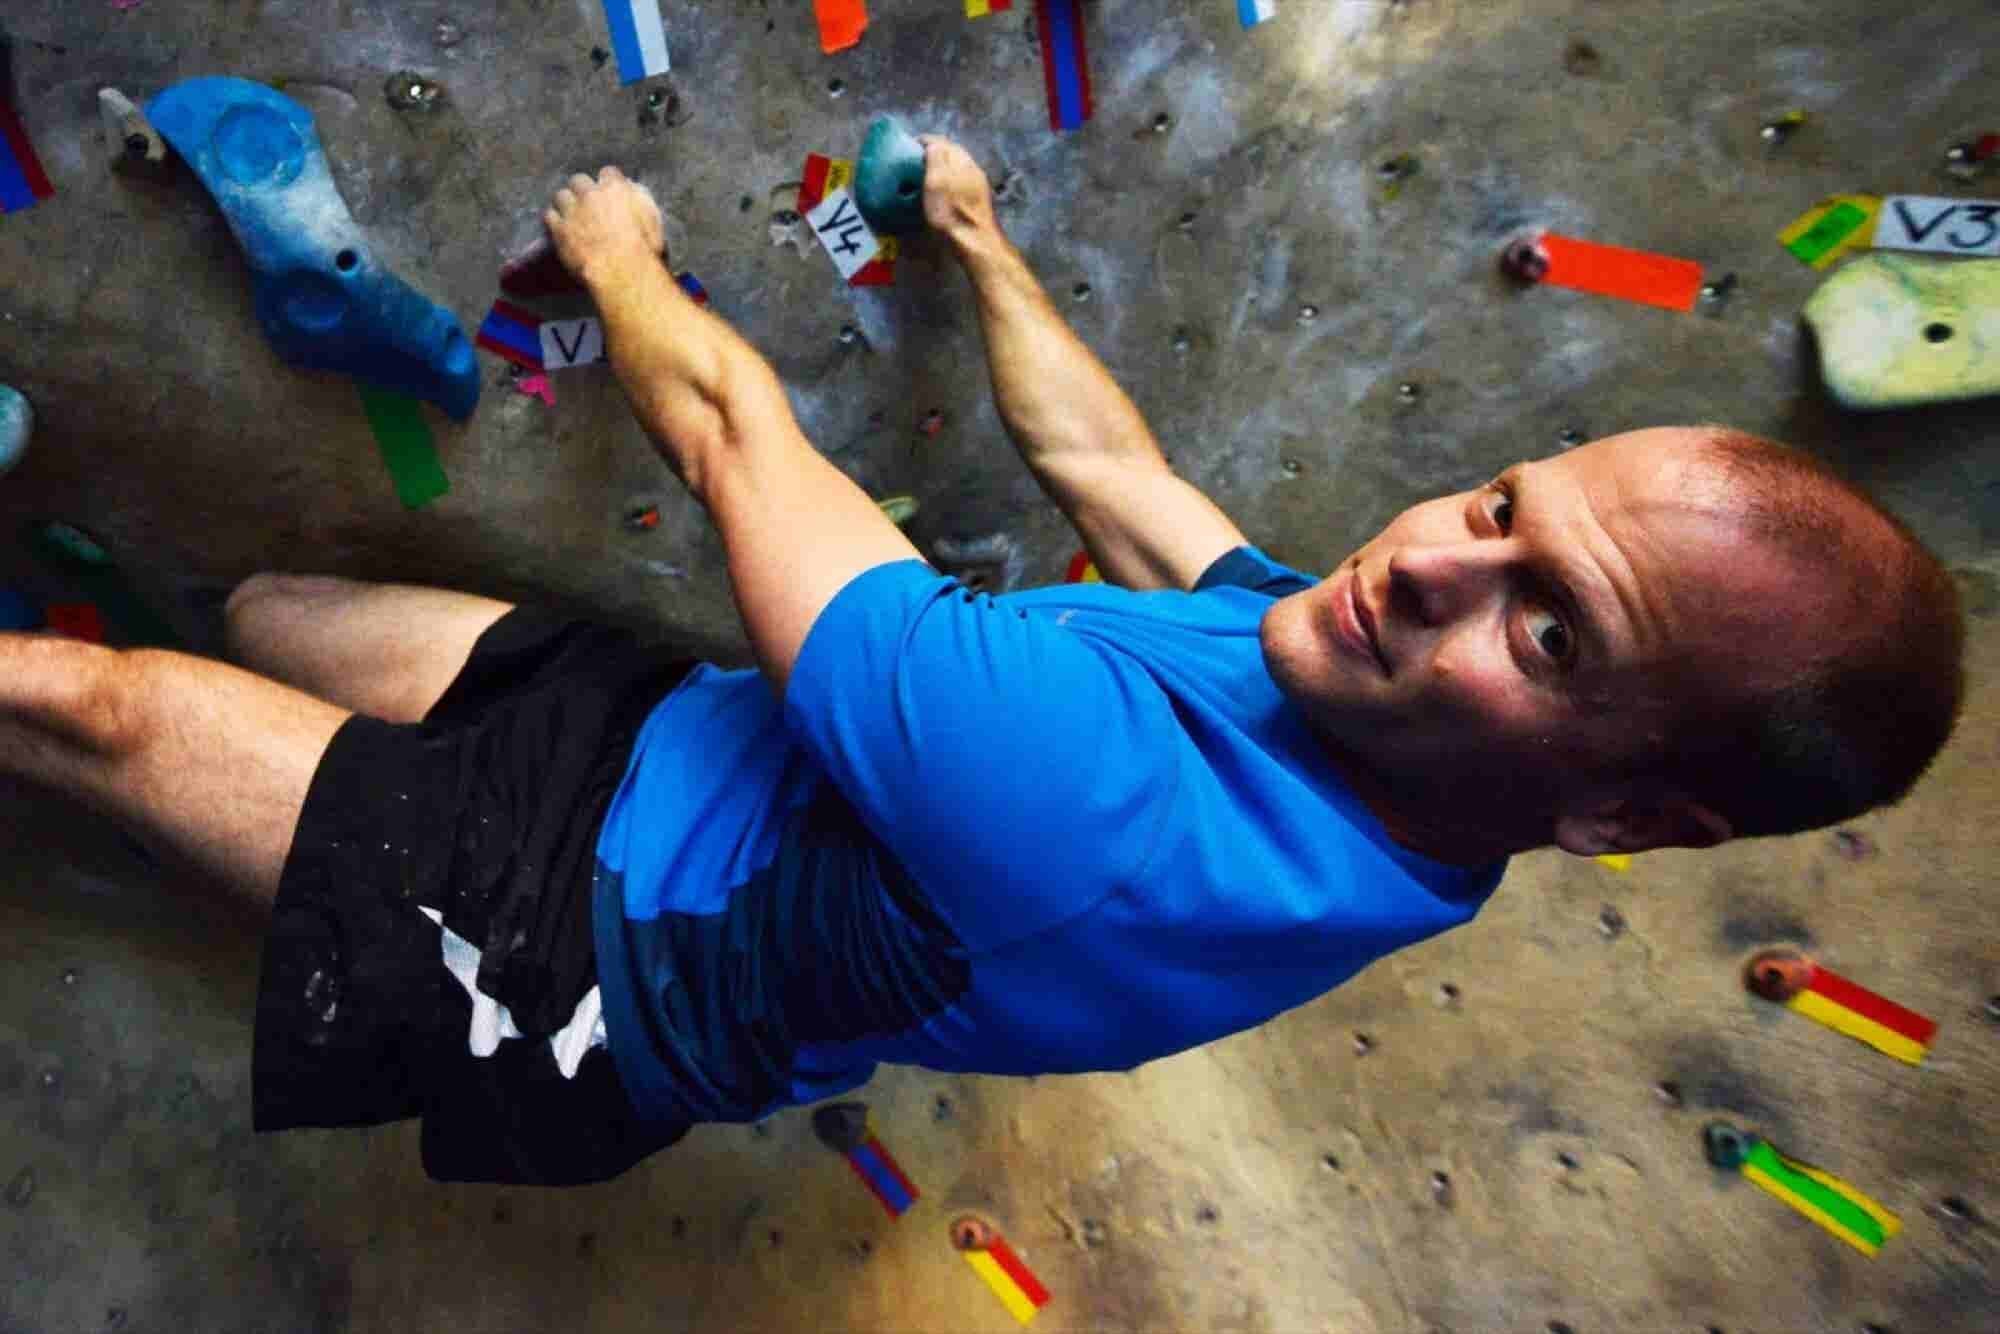 Best-Selling Author Tim Ferriss Doles Out Business Advice